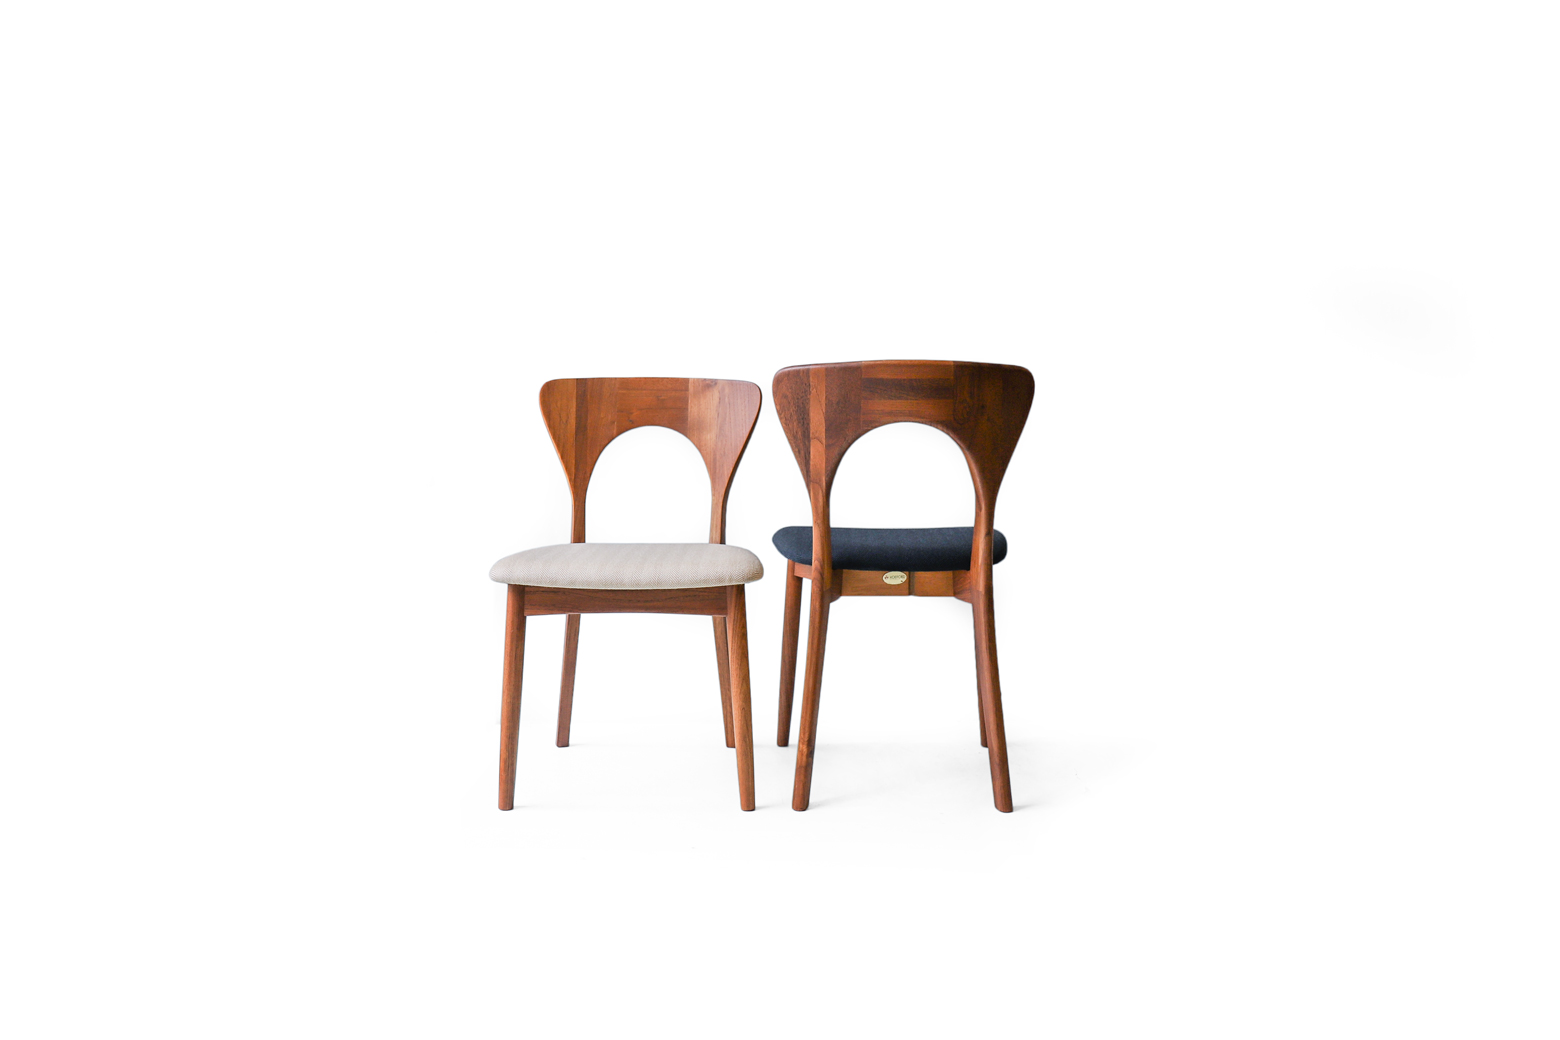 Danish Vintage Dining Chair Peter by Niels Koefoed for KOEFOEDS HORNSLET/デンマーク ヴィンテージ ダイニングチェア ピーター ニールス・コフォード 椅子 北欧家具 チーク材